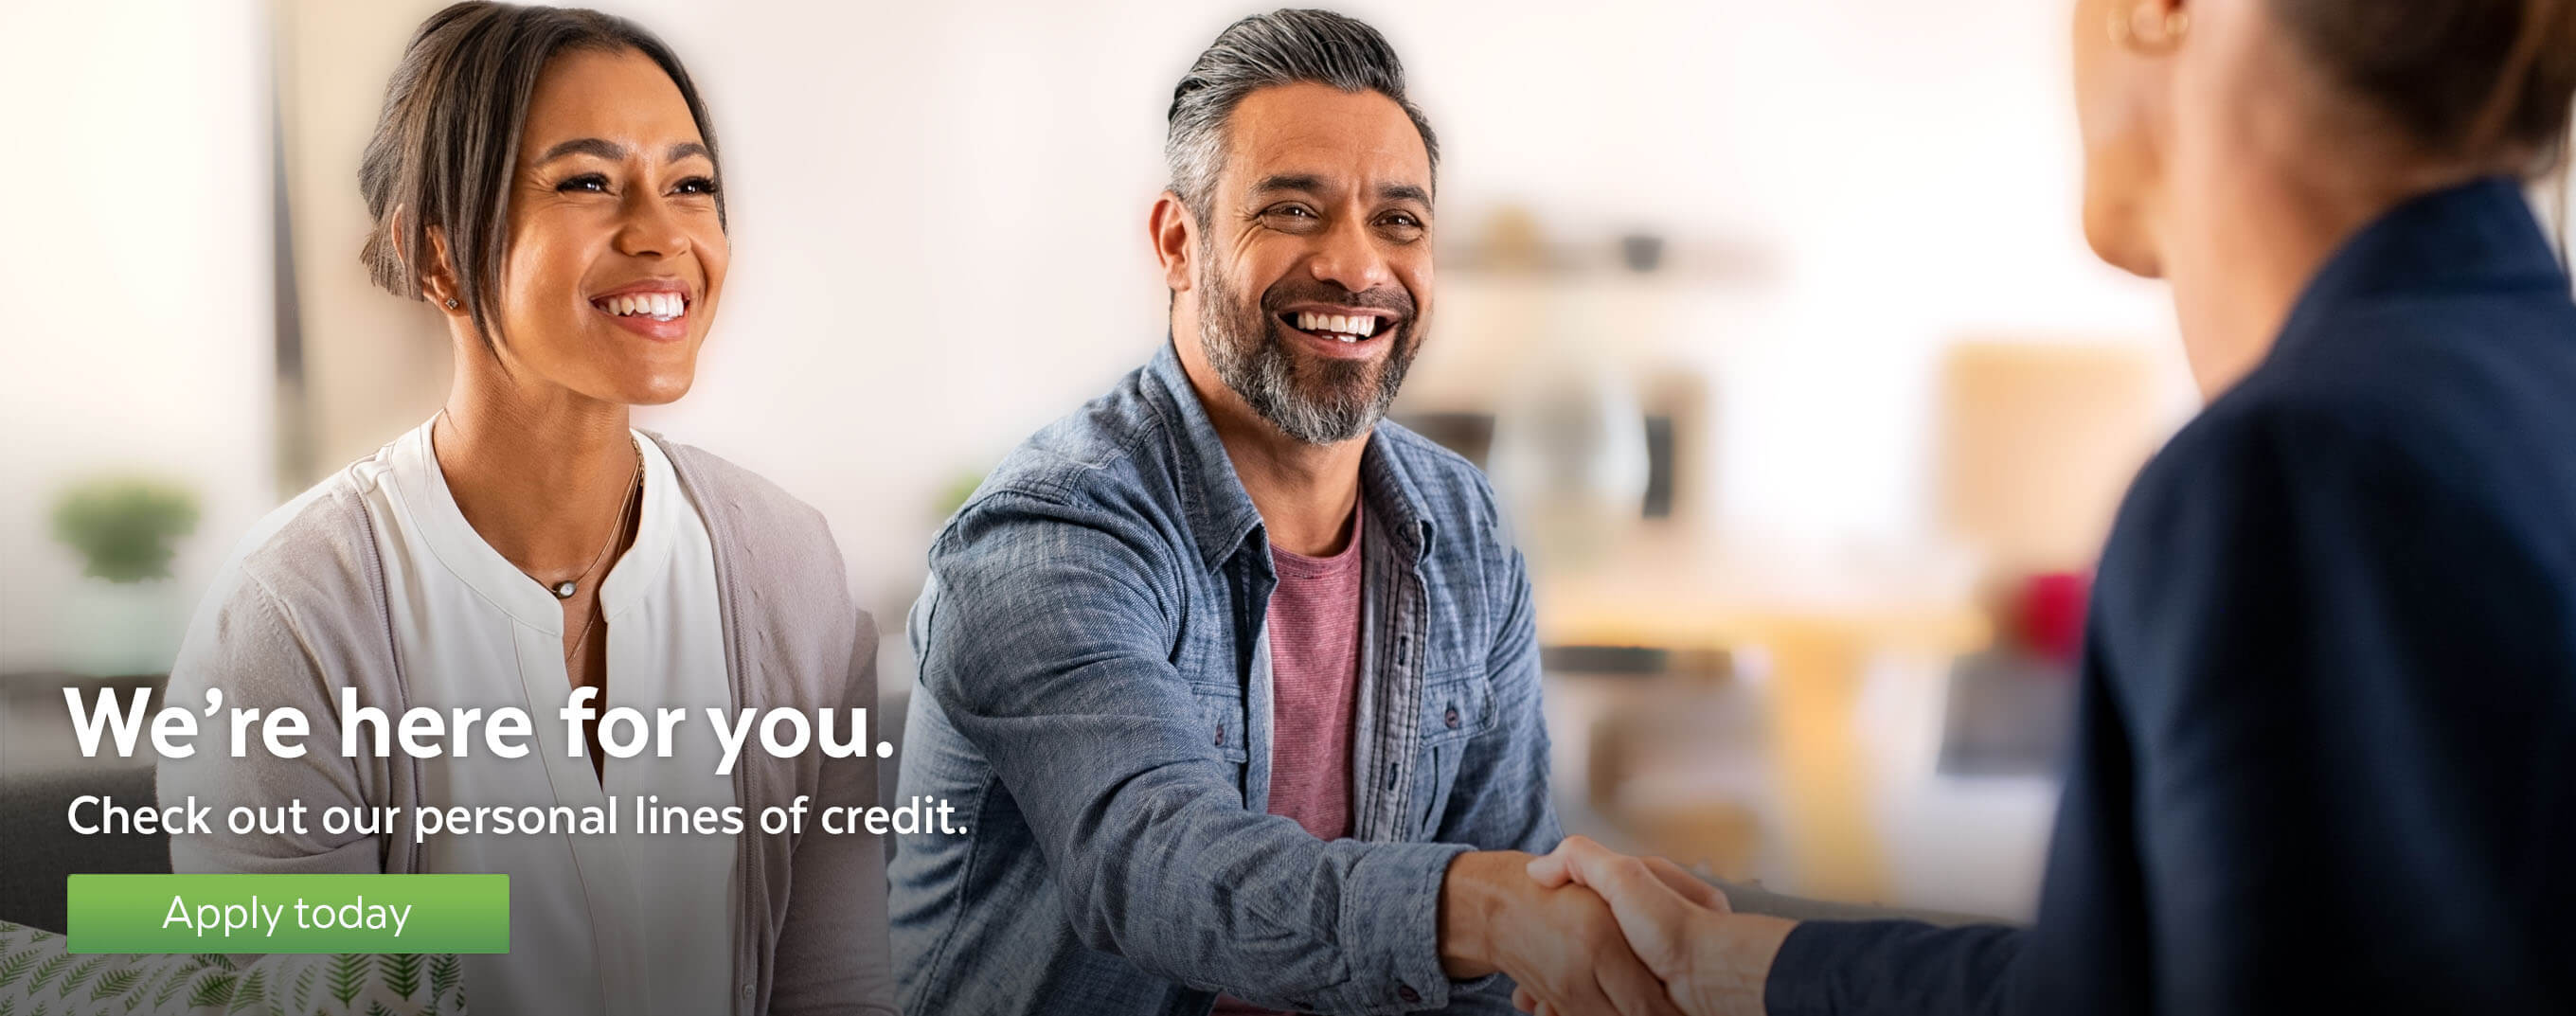 We're here for you. Check out our personal lines of credit.